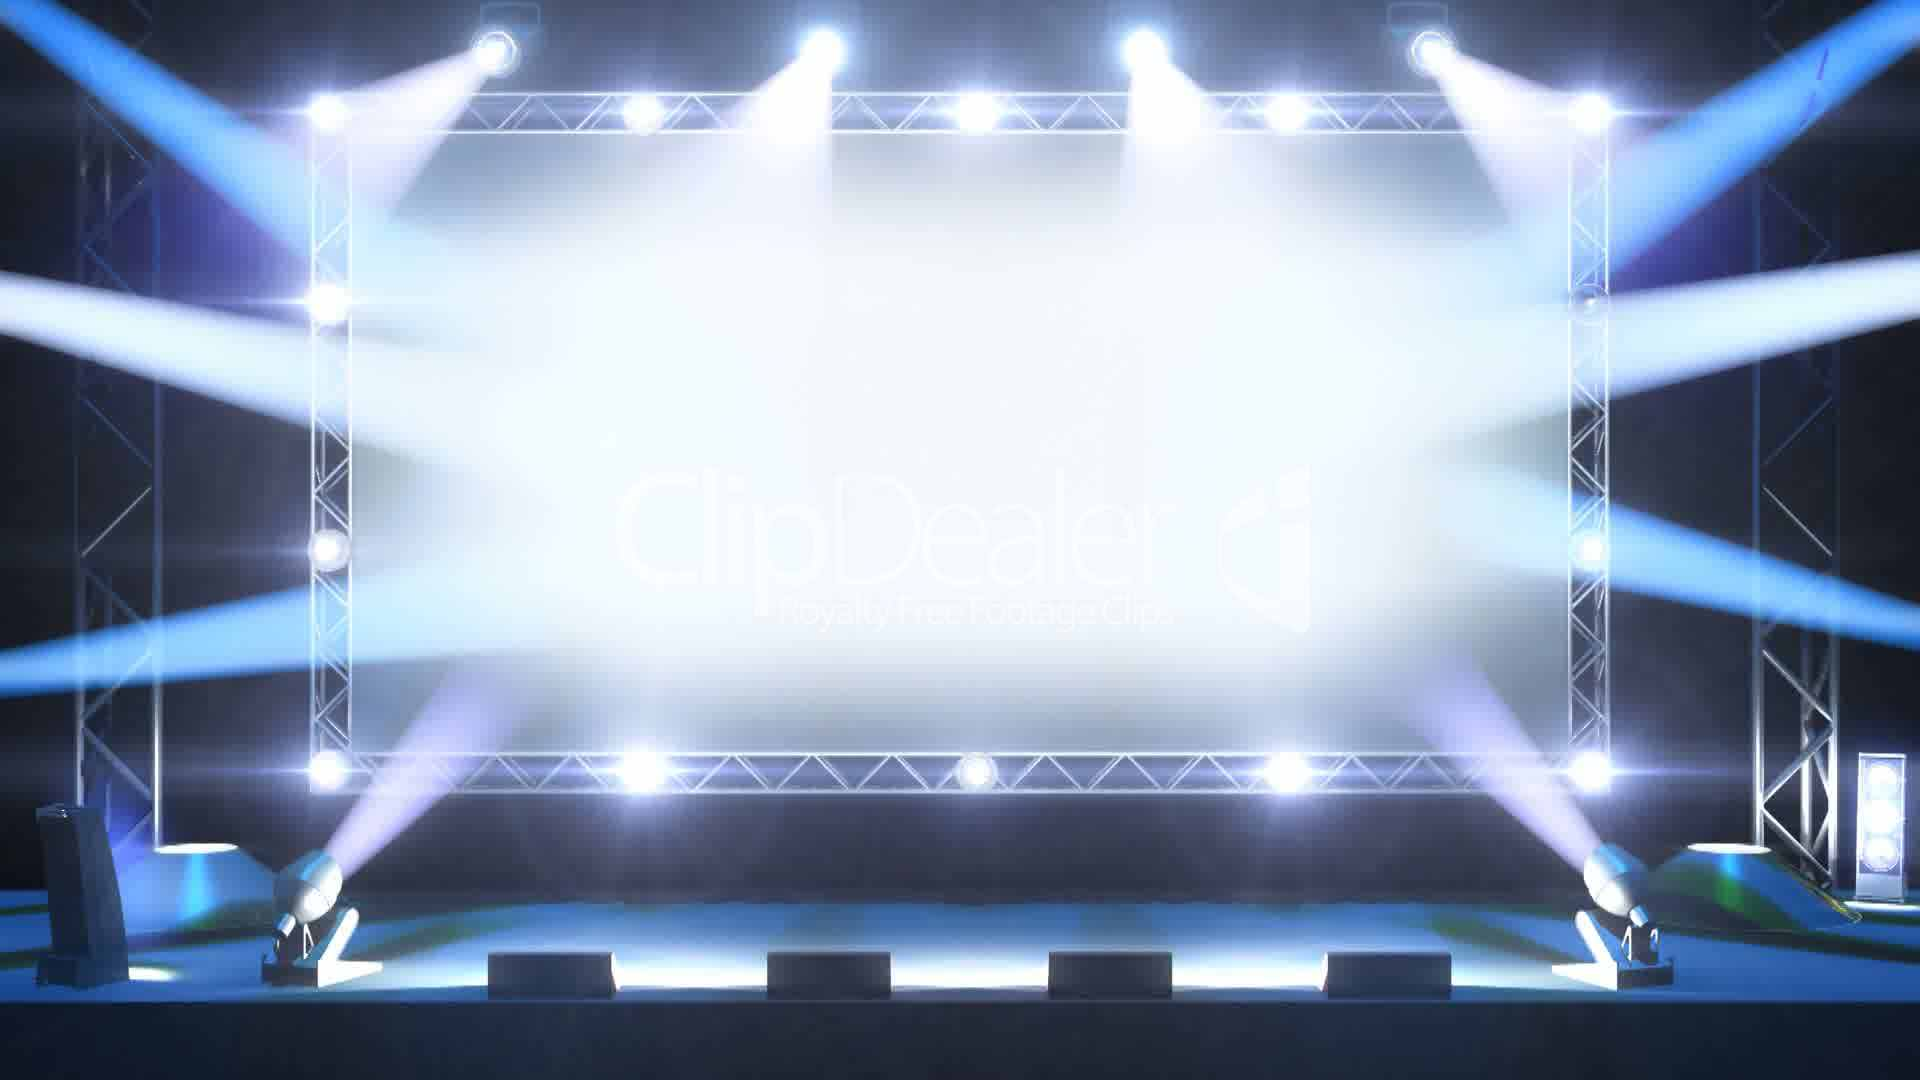 Concert Stage Wallpaper Related Keywords Suggestions   Concert Stage 1920x1080